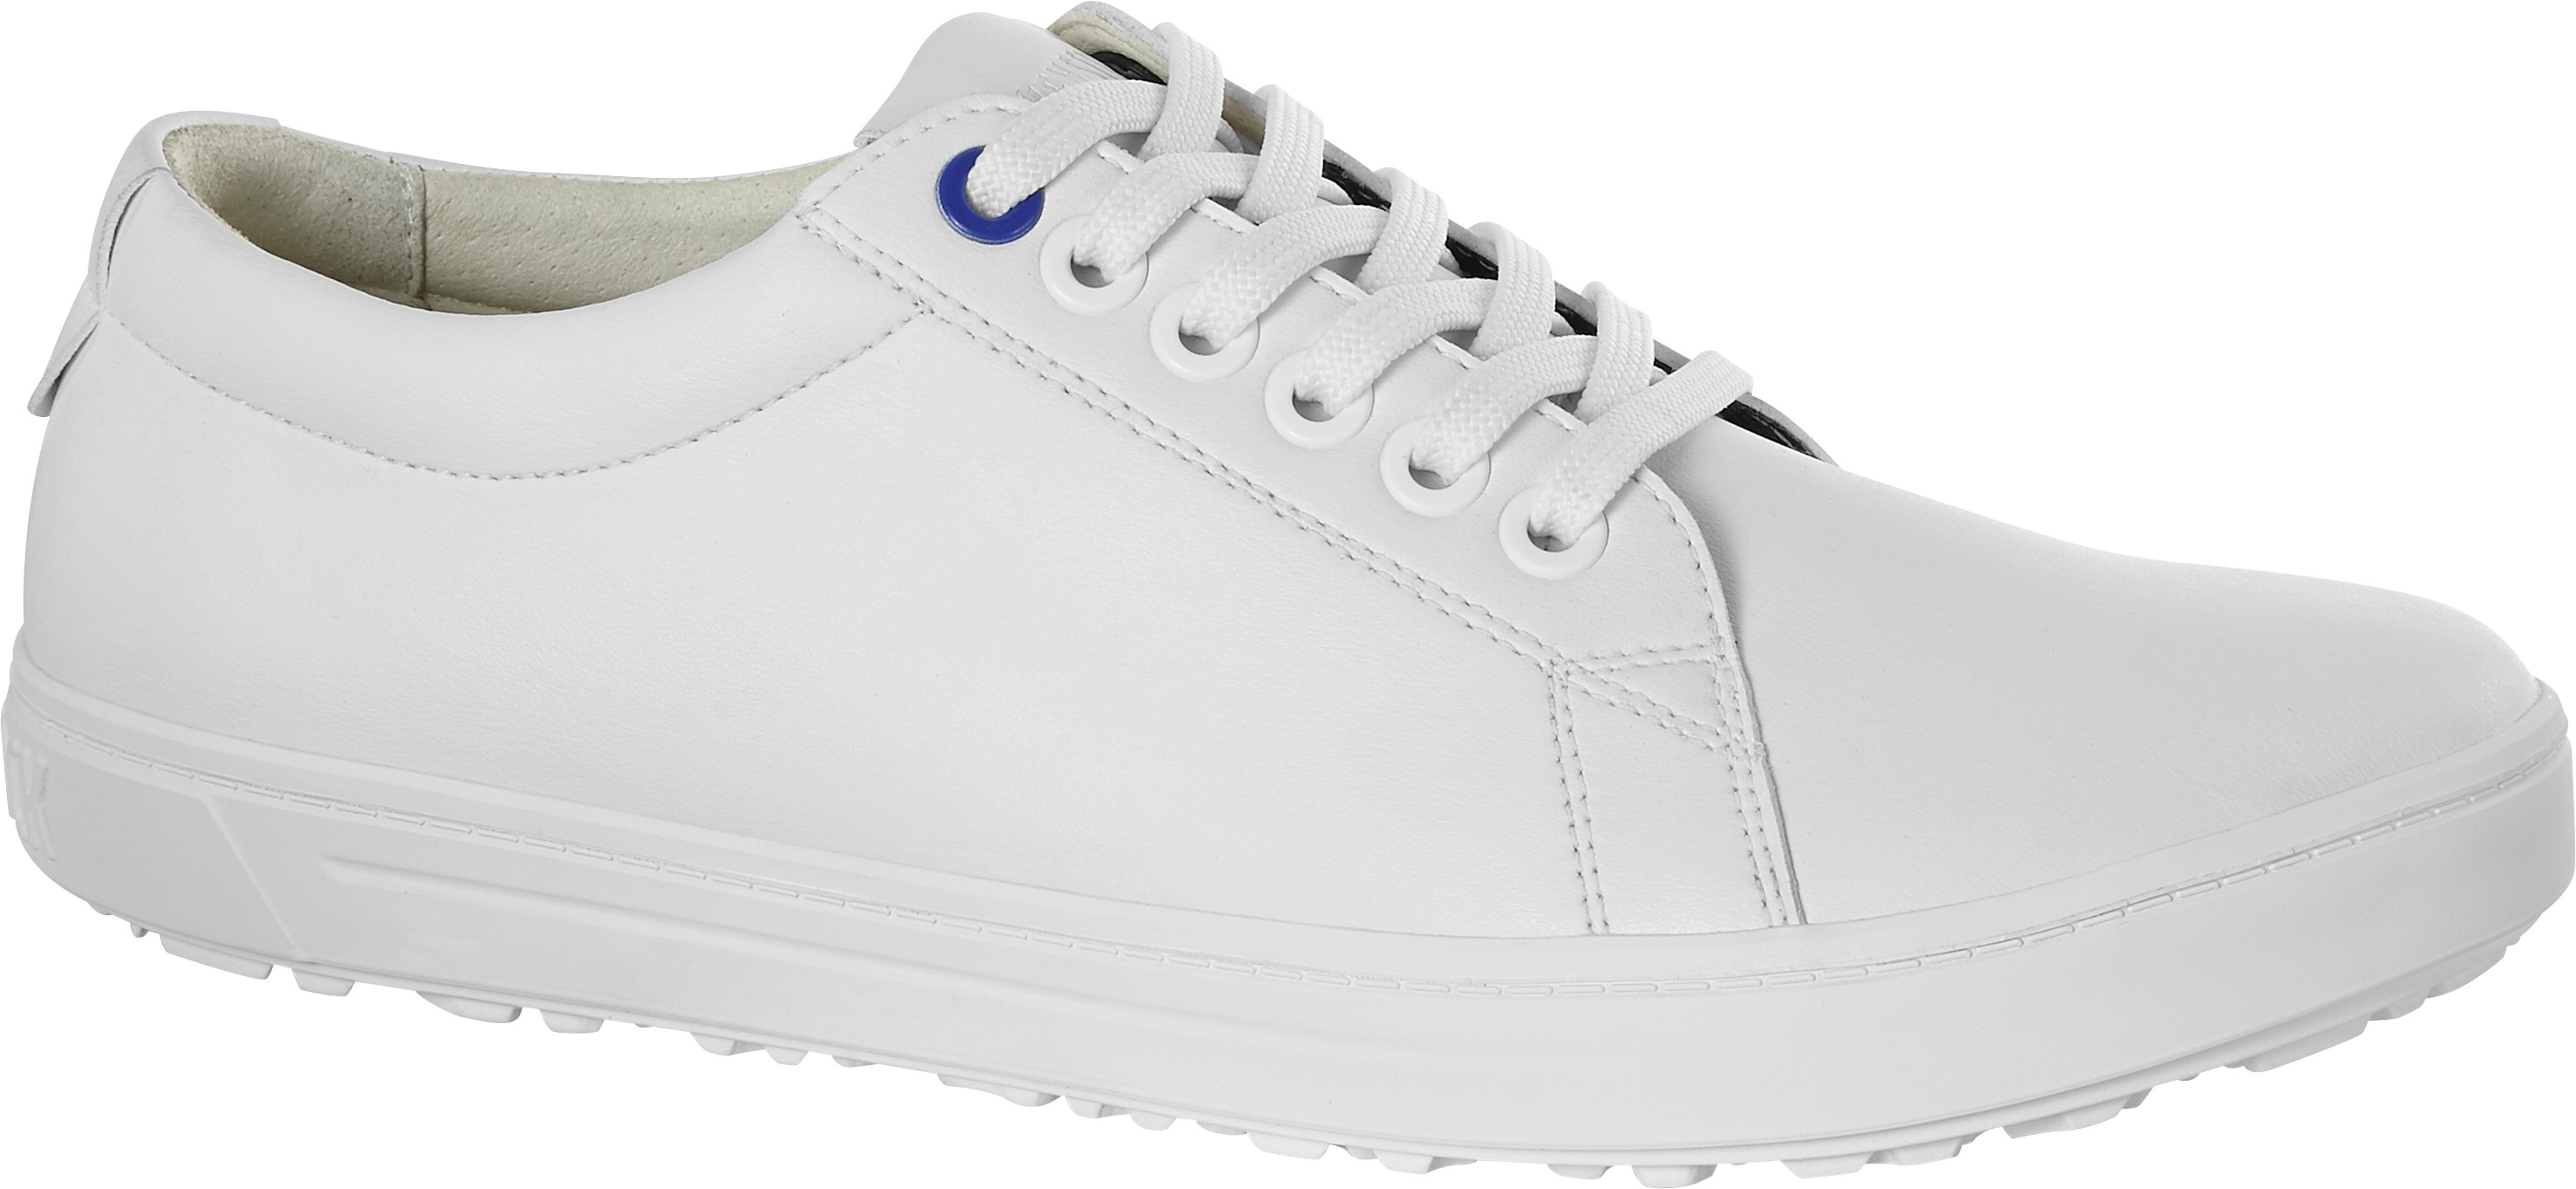 Shoes For Crews Price